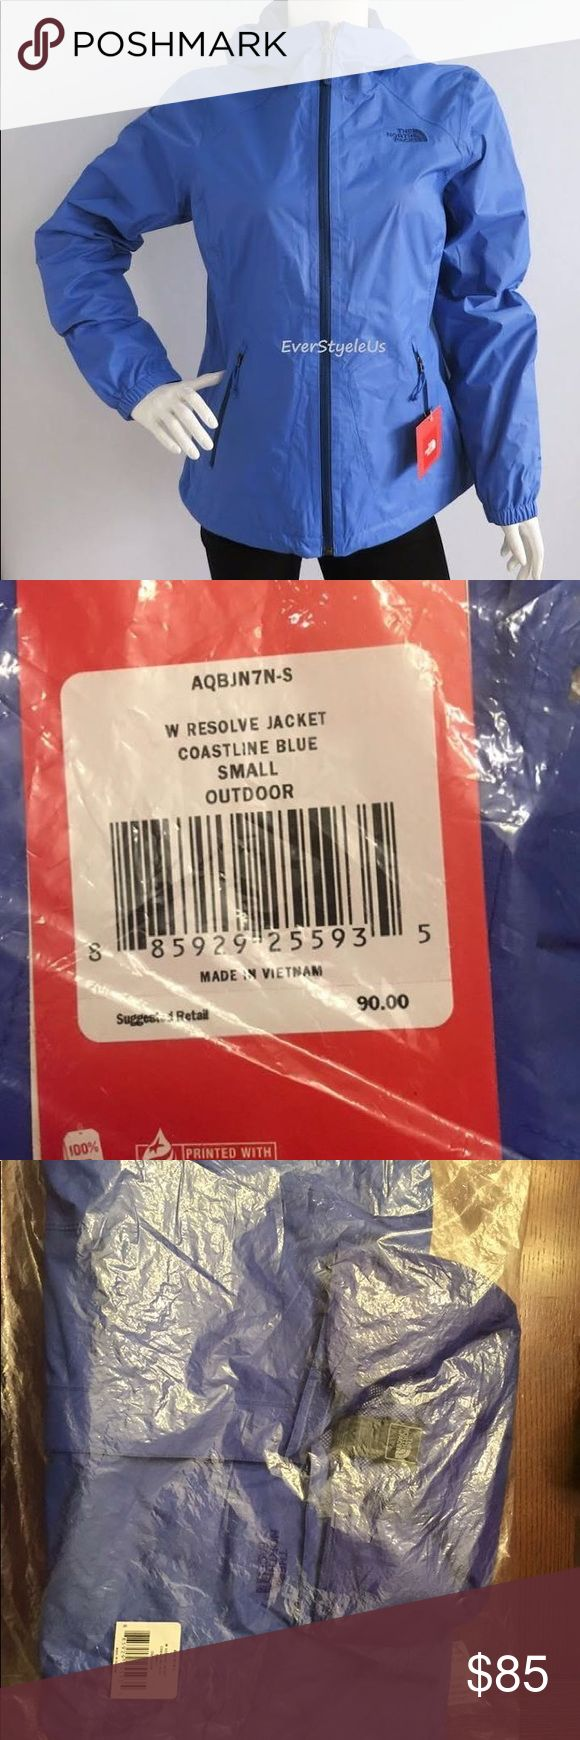 North Face Resolve Coastline Blue Rain Jacket S Brand New, still in package North Face Resolve Coastline Blue rain jacket size Small North Face Jackets & Coats